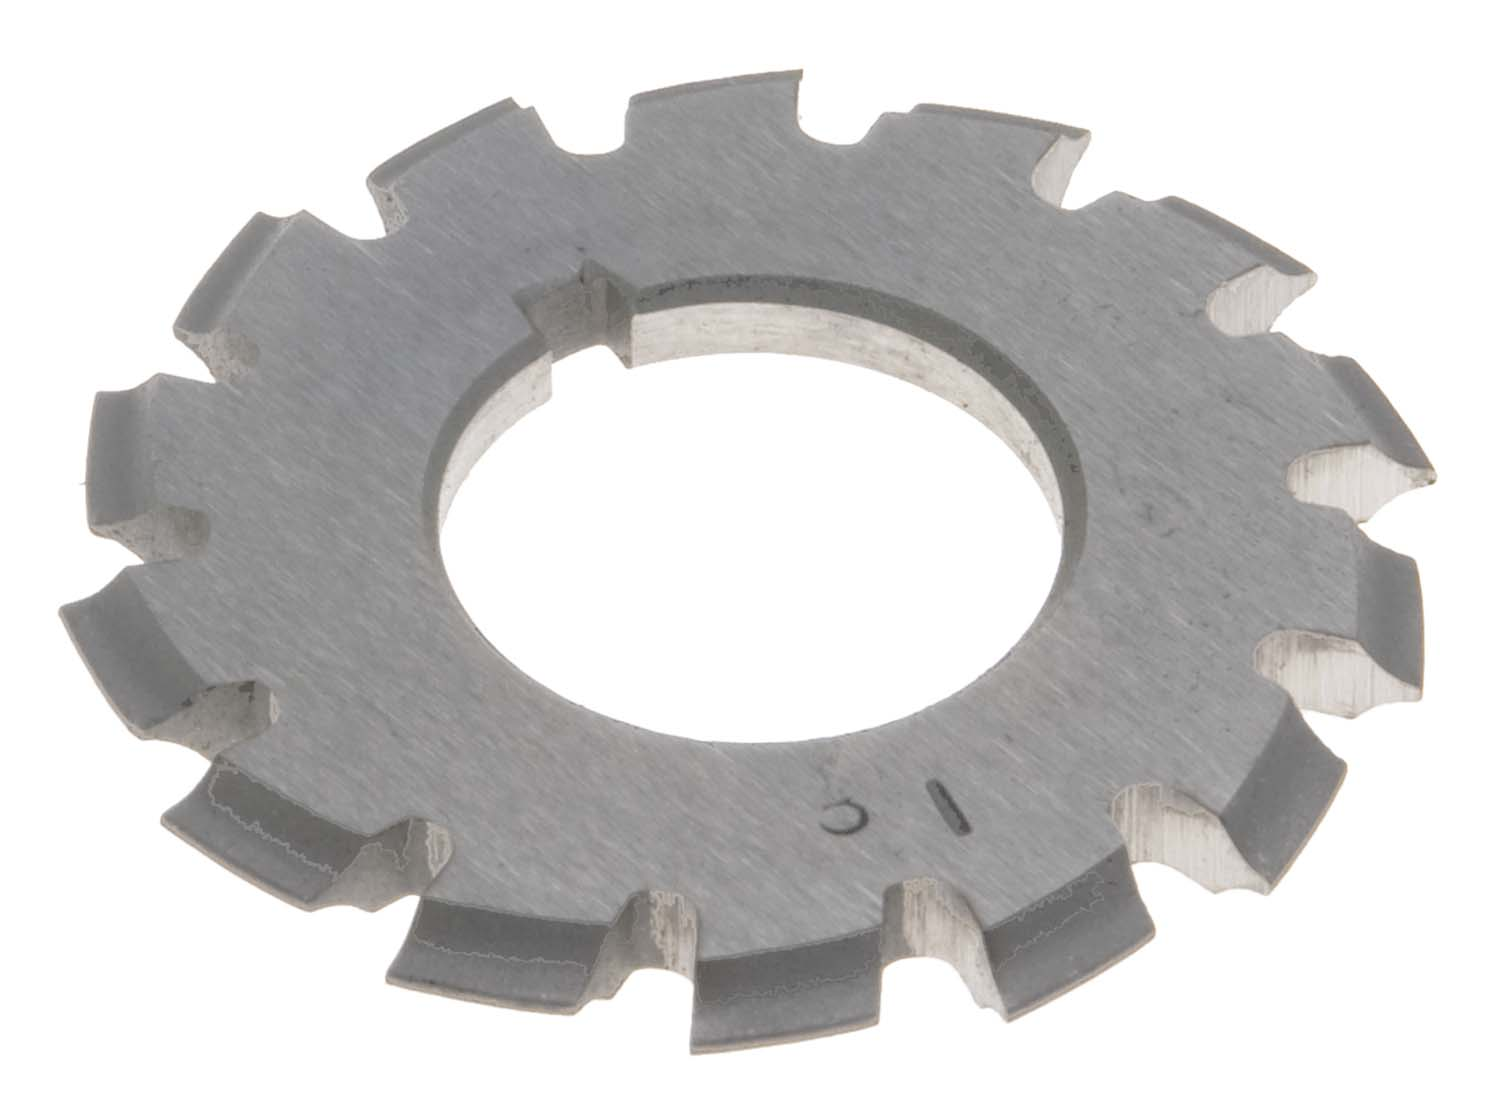 30 Diametral Pitch # 6   Involute Gear Cutter - 7/8 ID - 14-1/2 Degree Pressure Angle